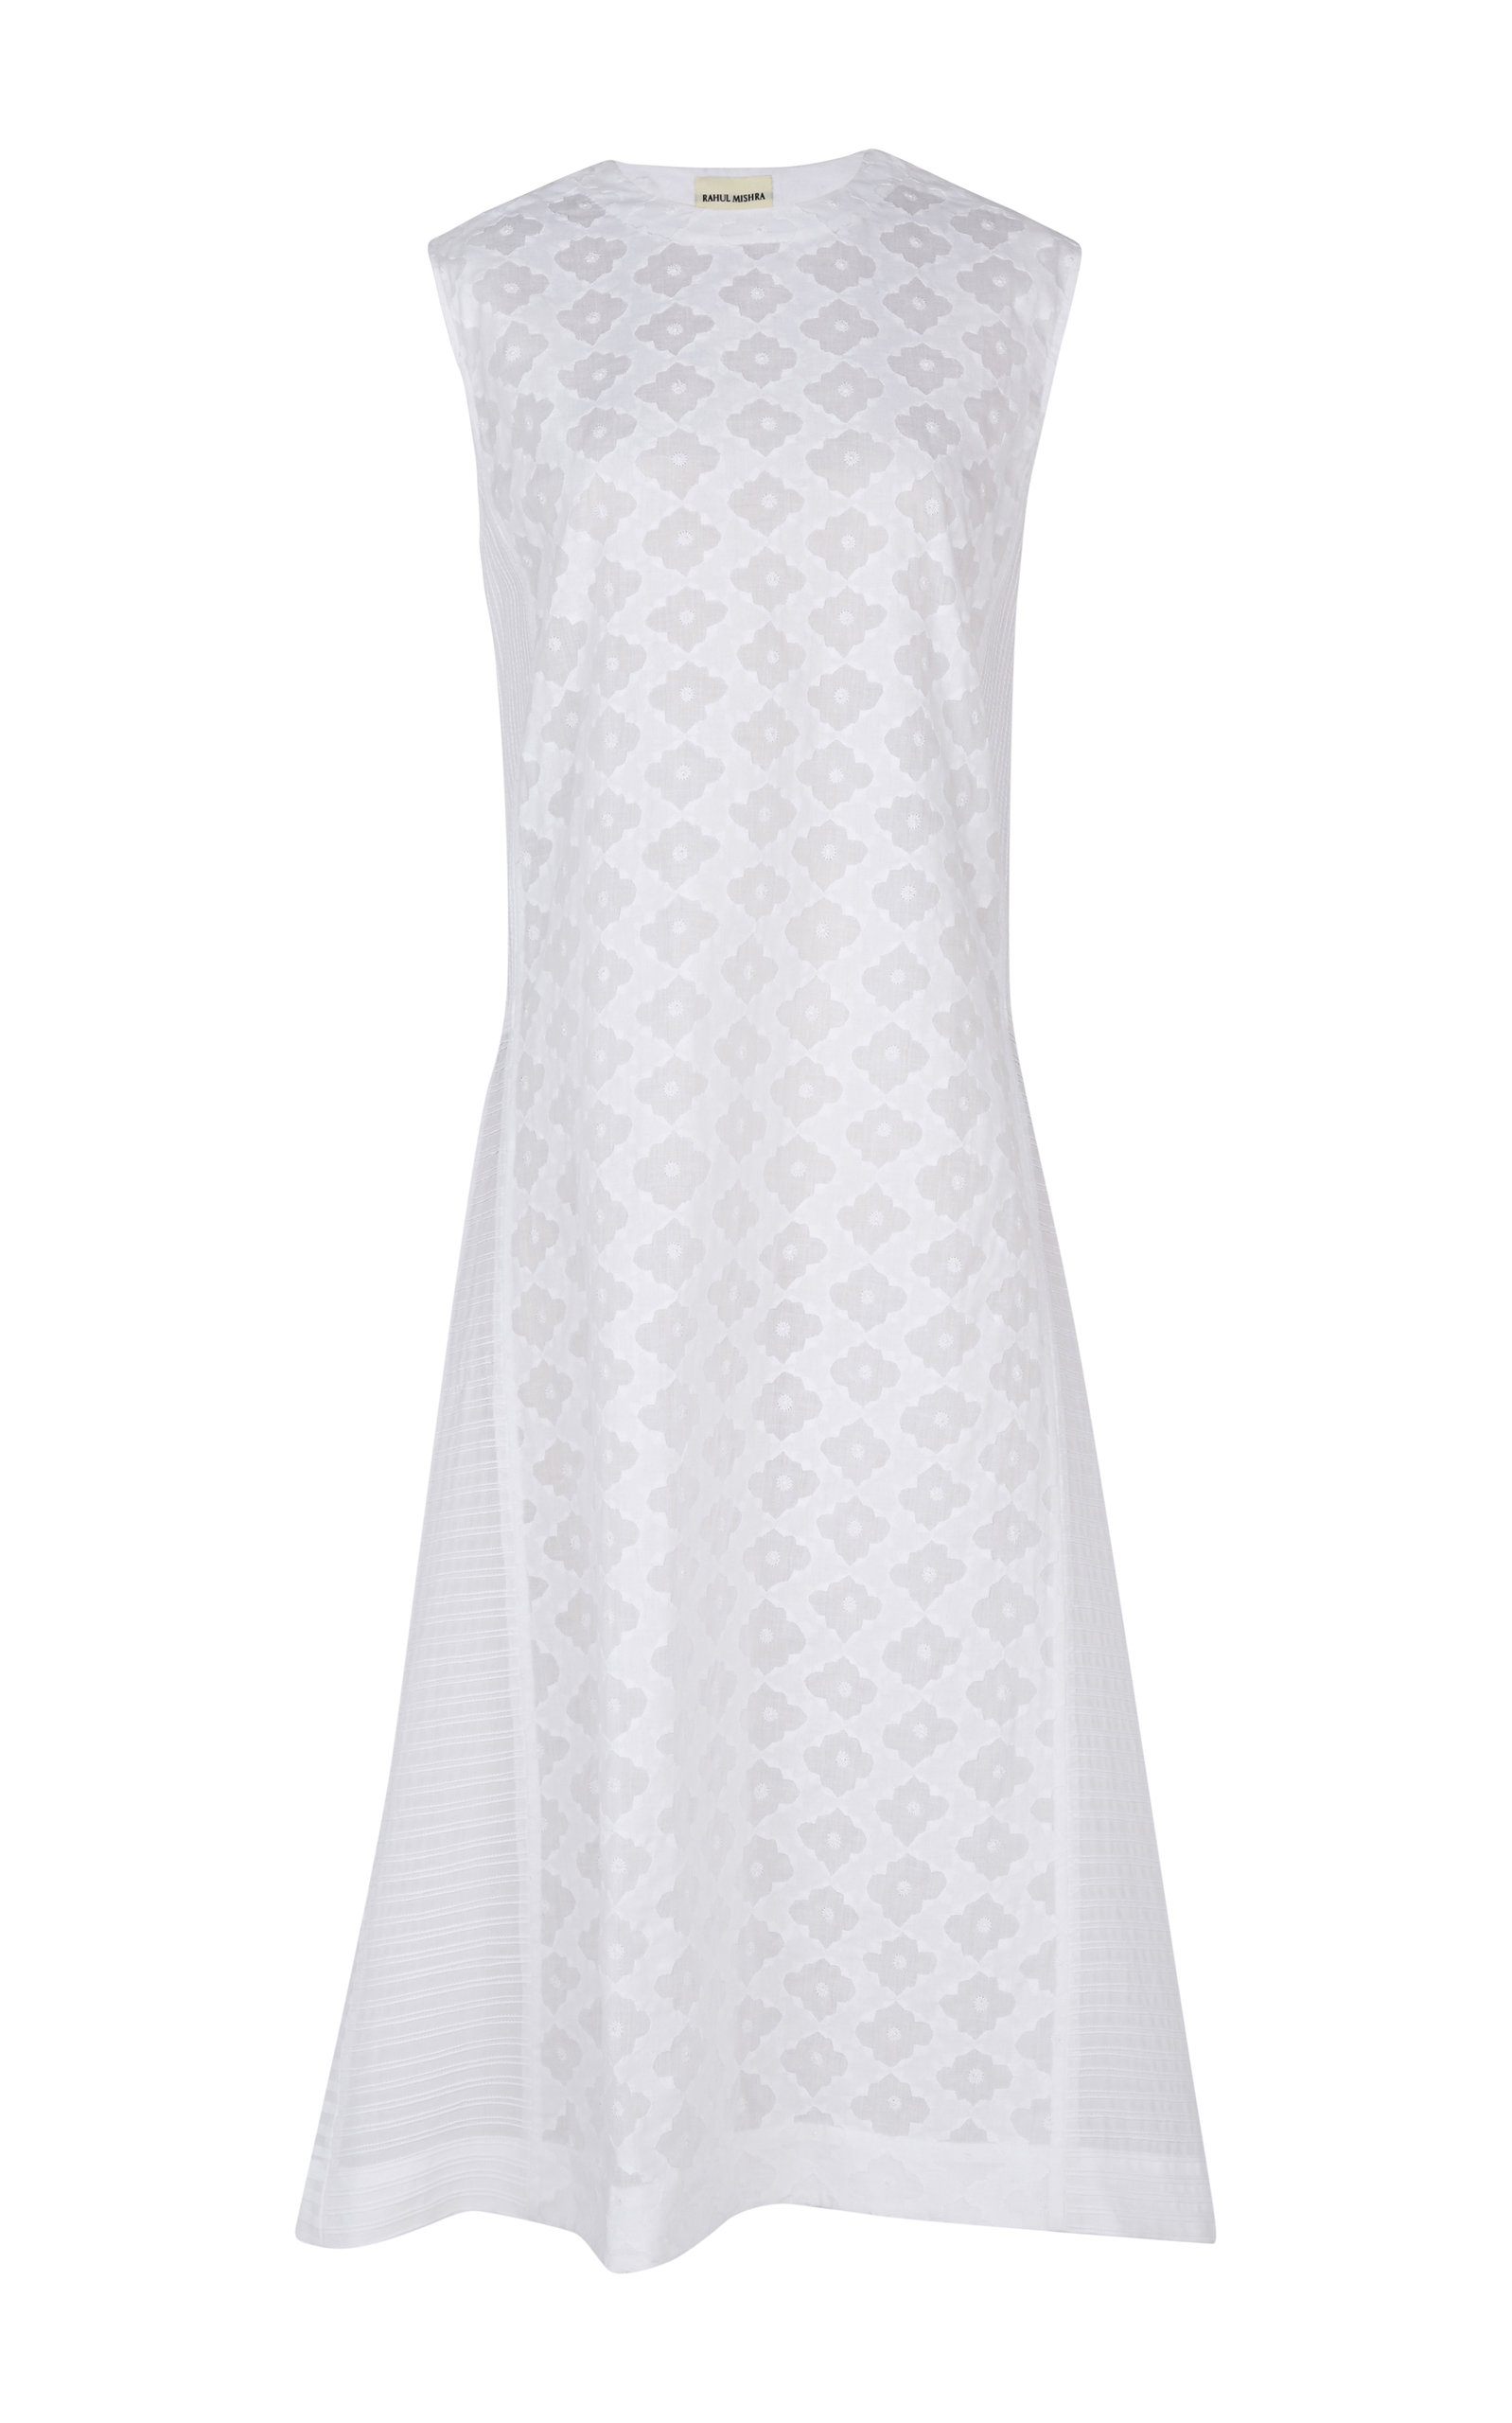 RAHUL MISHRA Jharokha Daraj Embroidered Cotton Long Dress in White